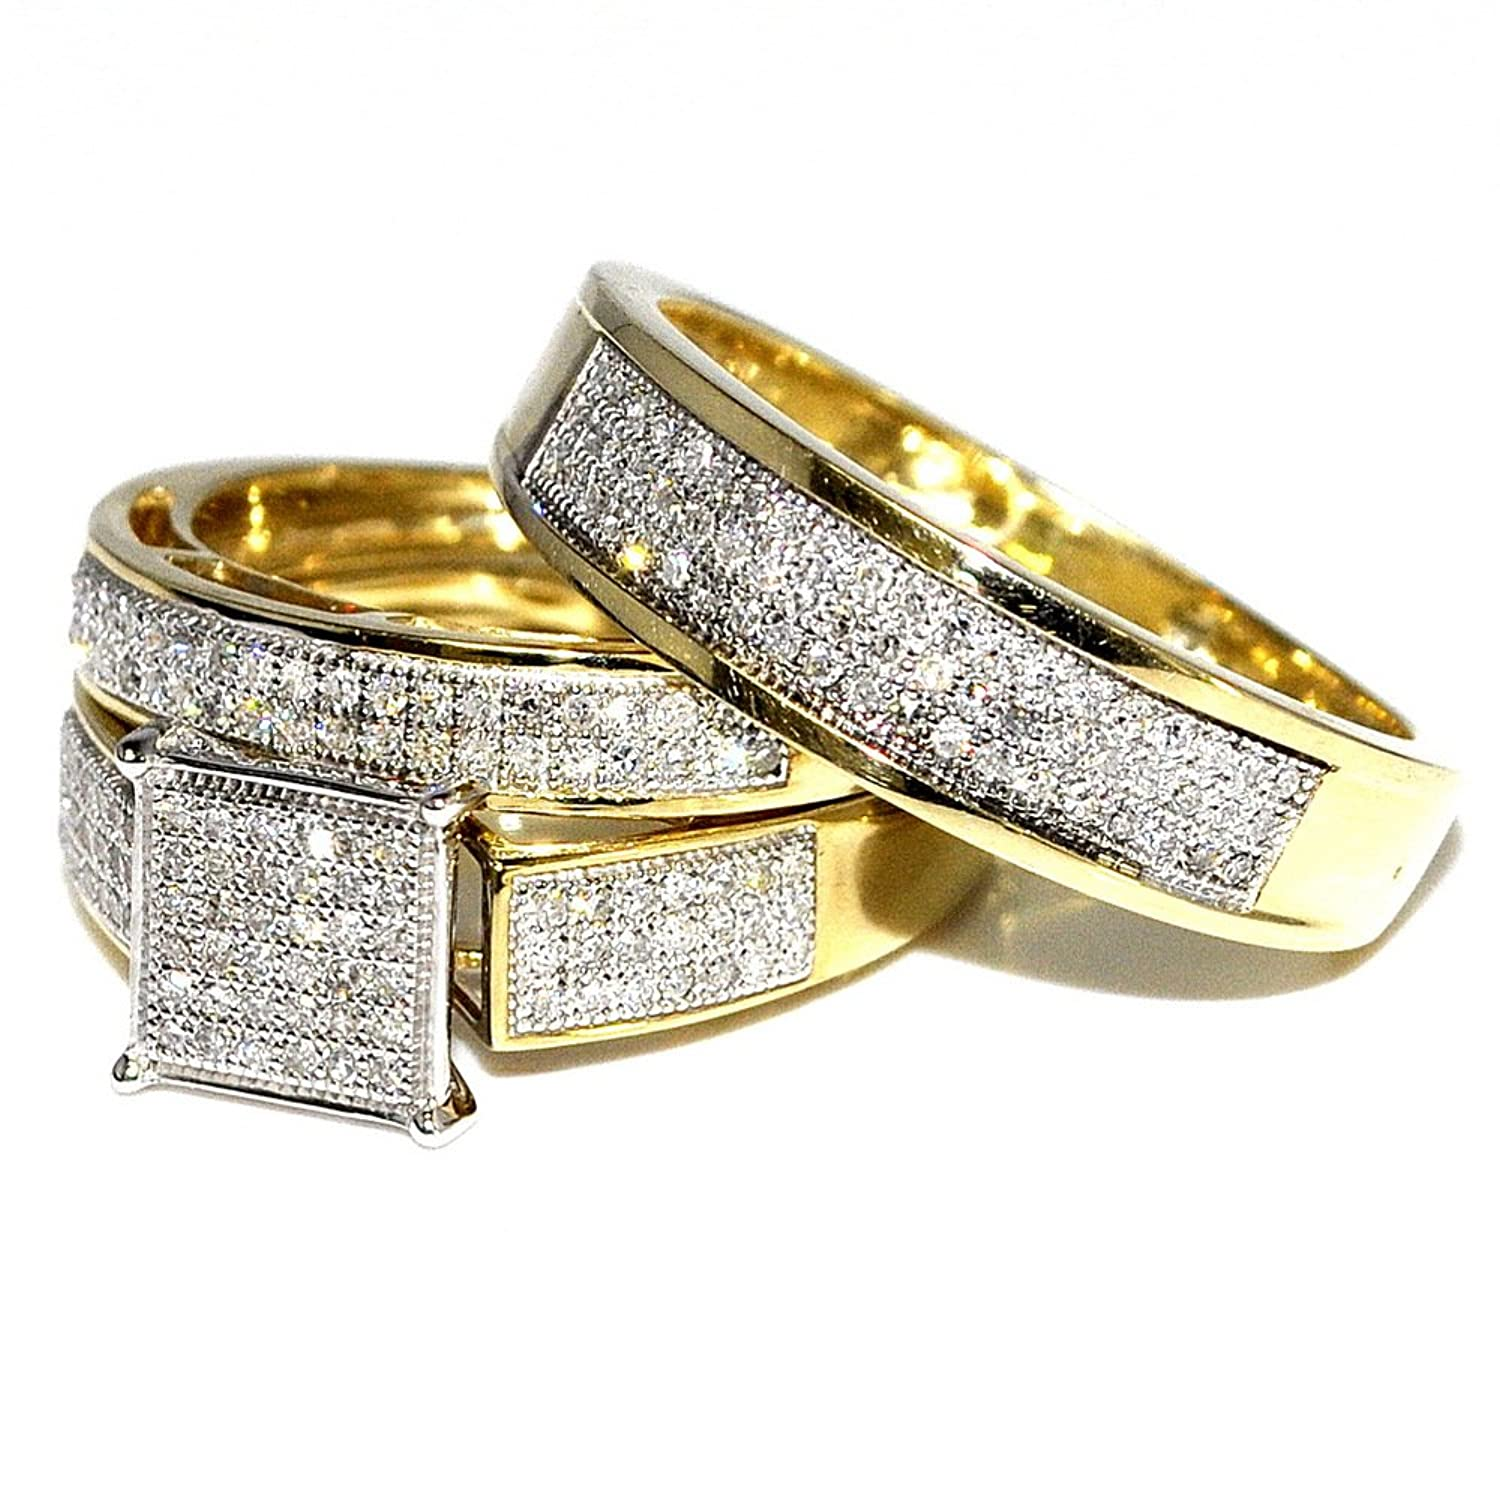 wedding yellow jewellery h ring occasion webstore titanium gold white product platinum cut number rings diamond samuel category patterned golden silver l